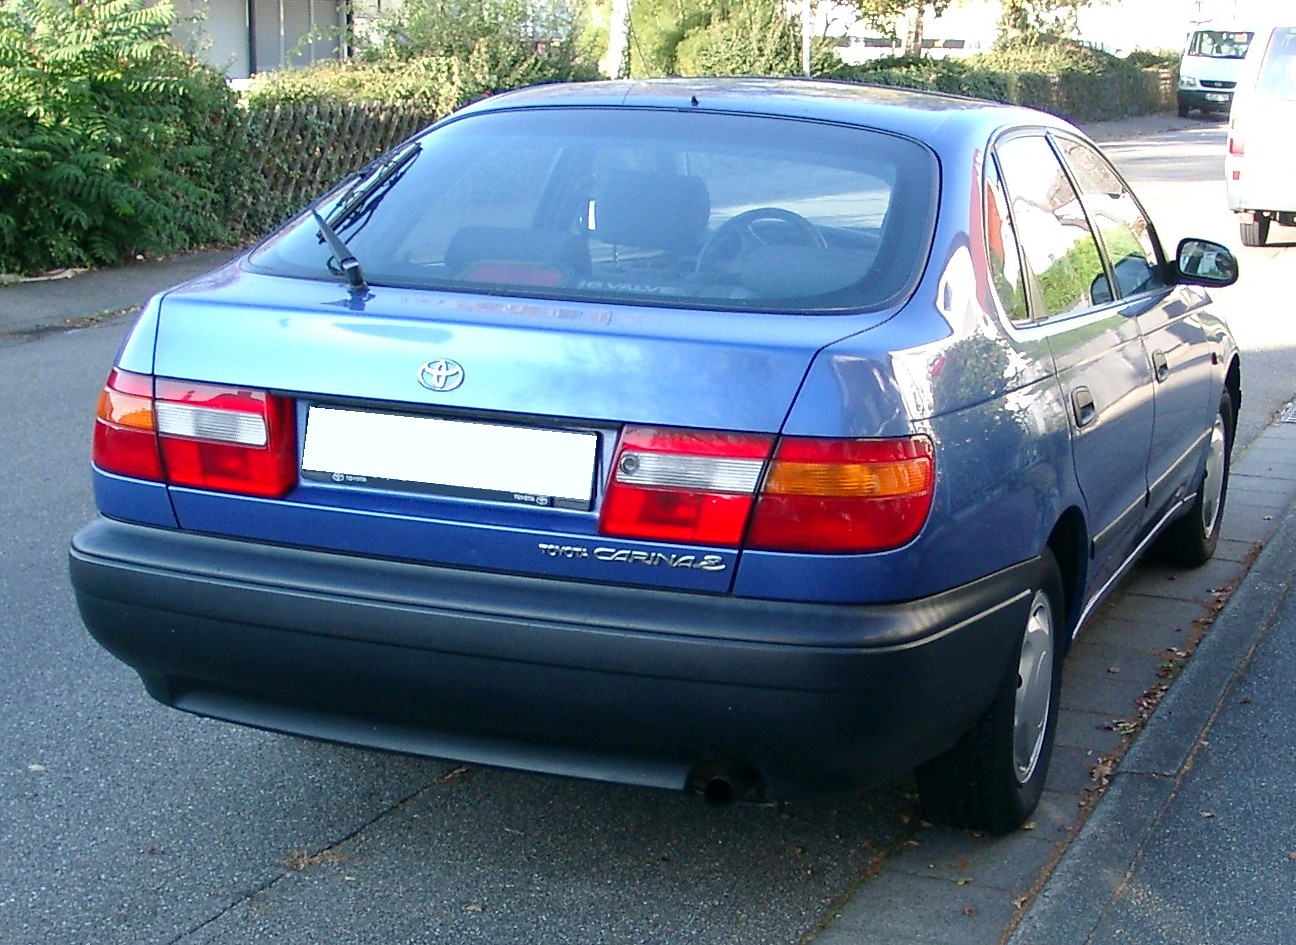 Toyota Carina E 1997 Photo - 1